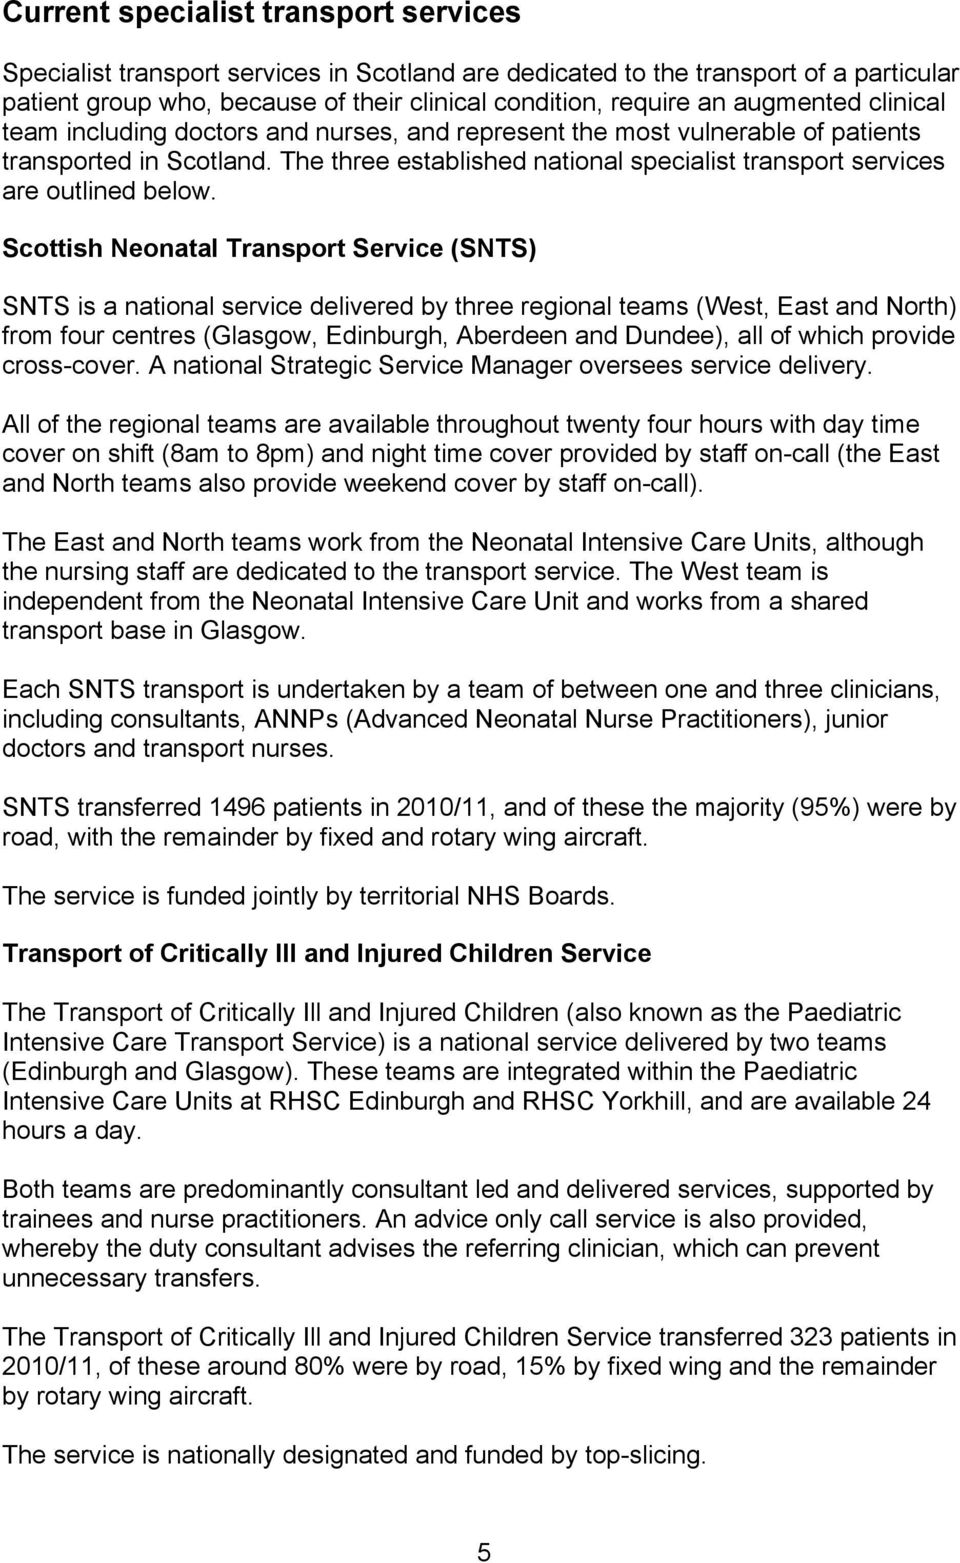 The three established national specialist transport services are outlined below.